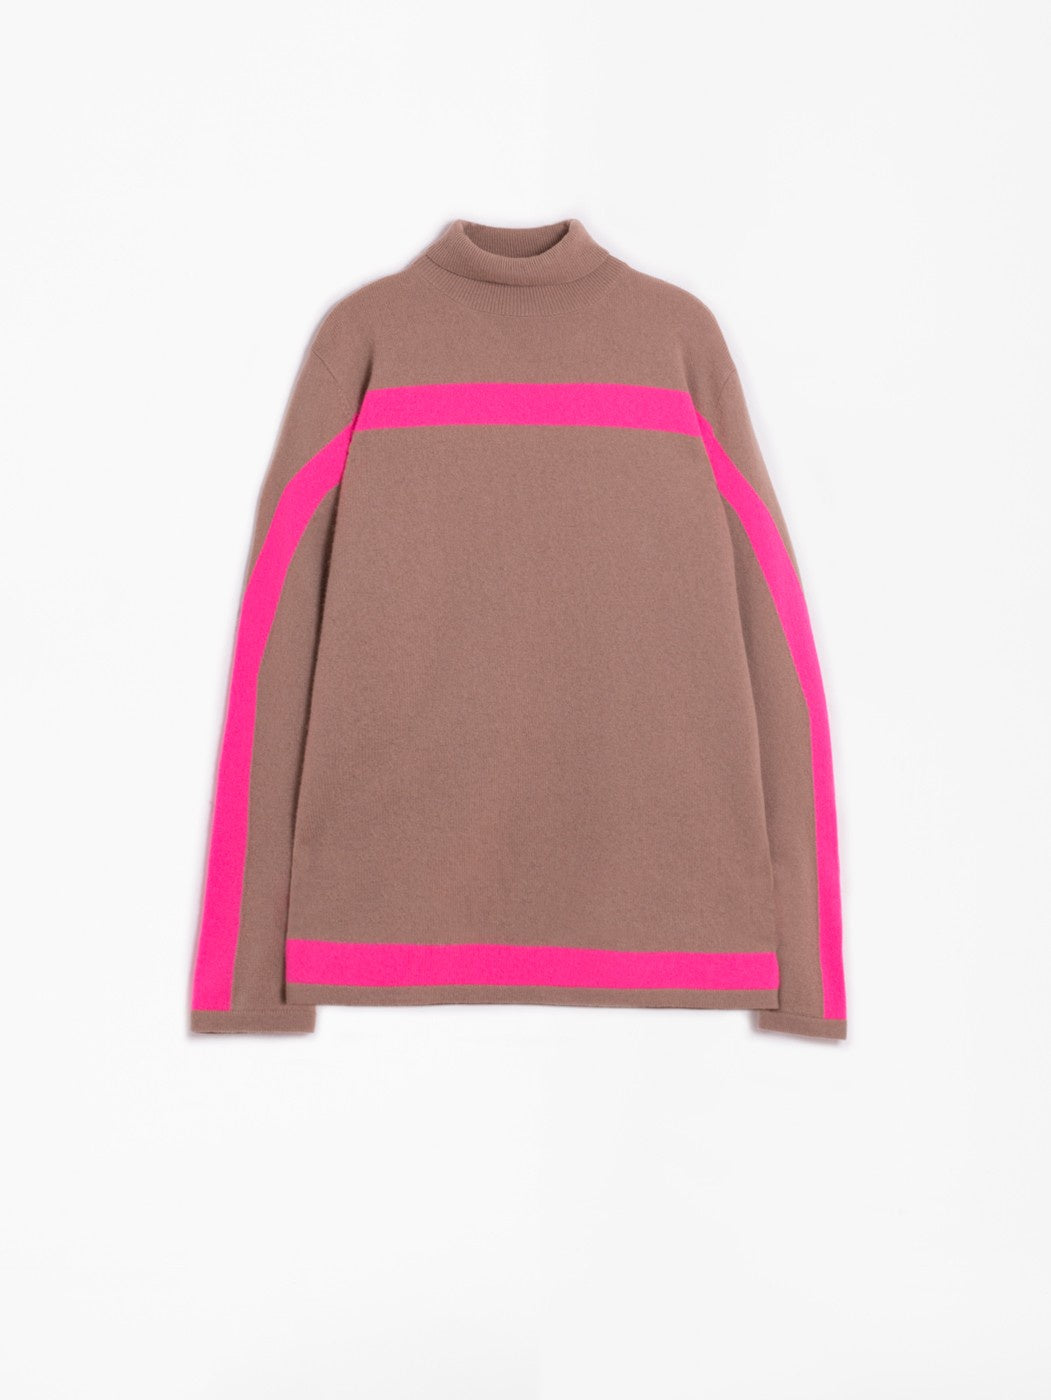 Betsy Turtle Neck - Camel